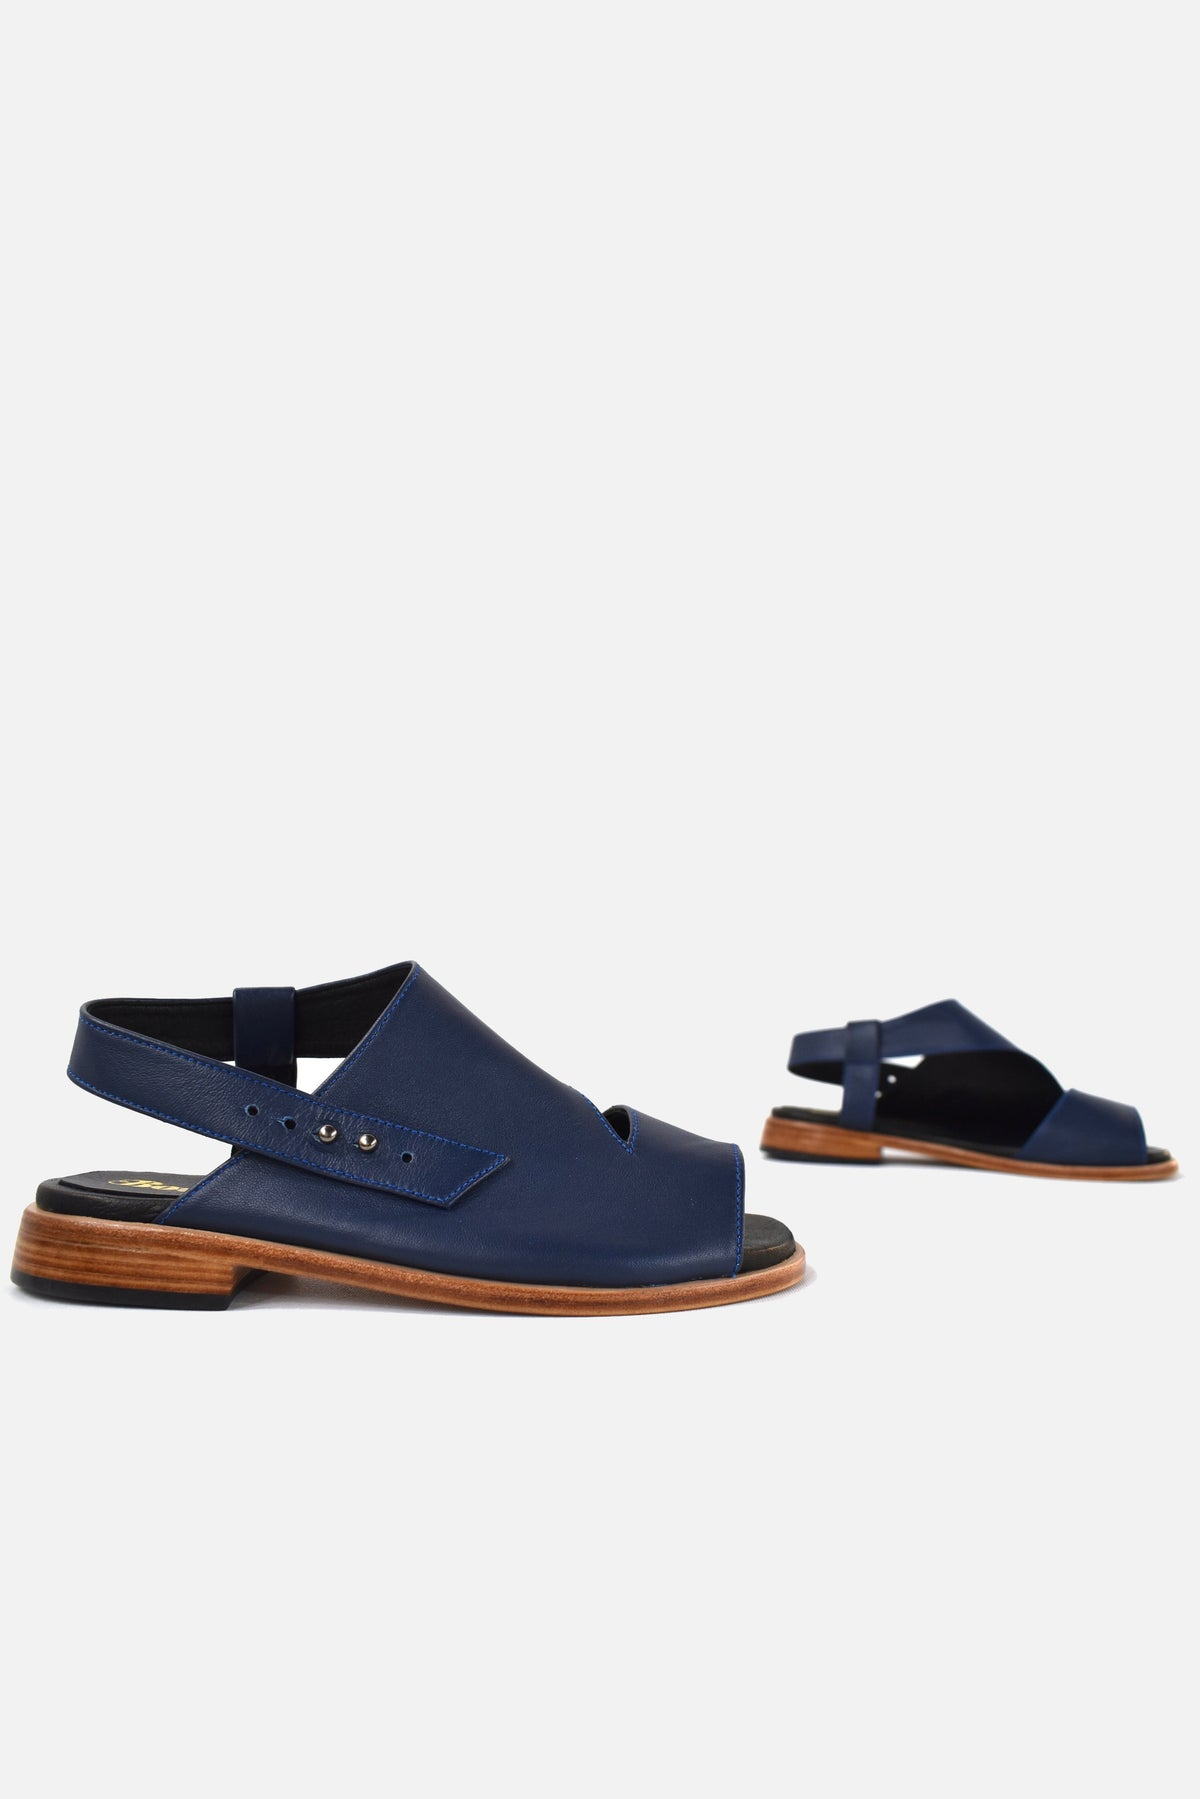 booker and co venus sandals in blue at stockroom